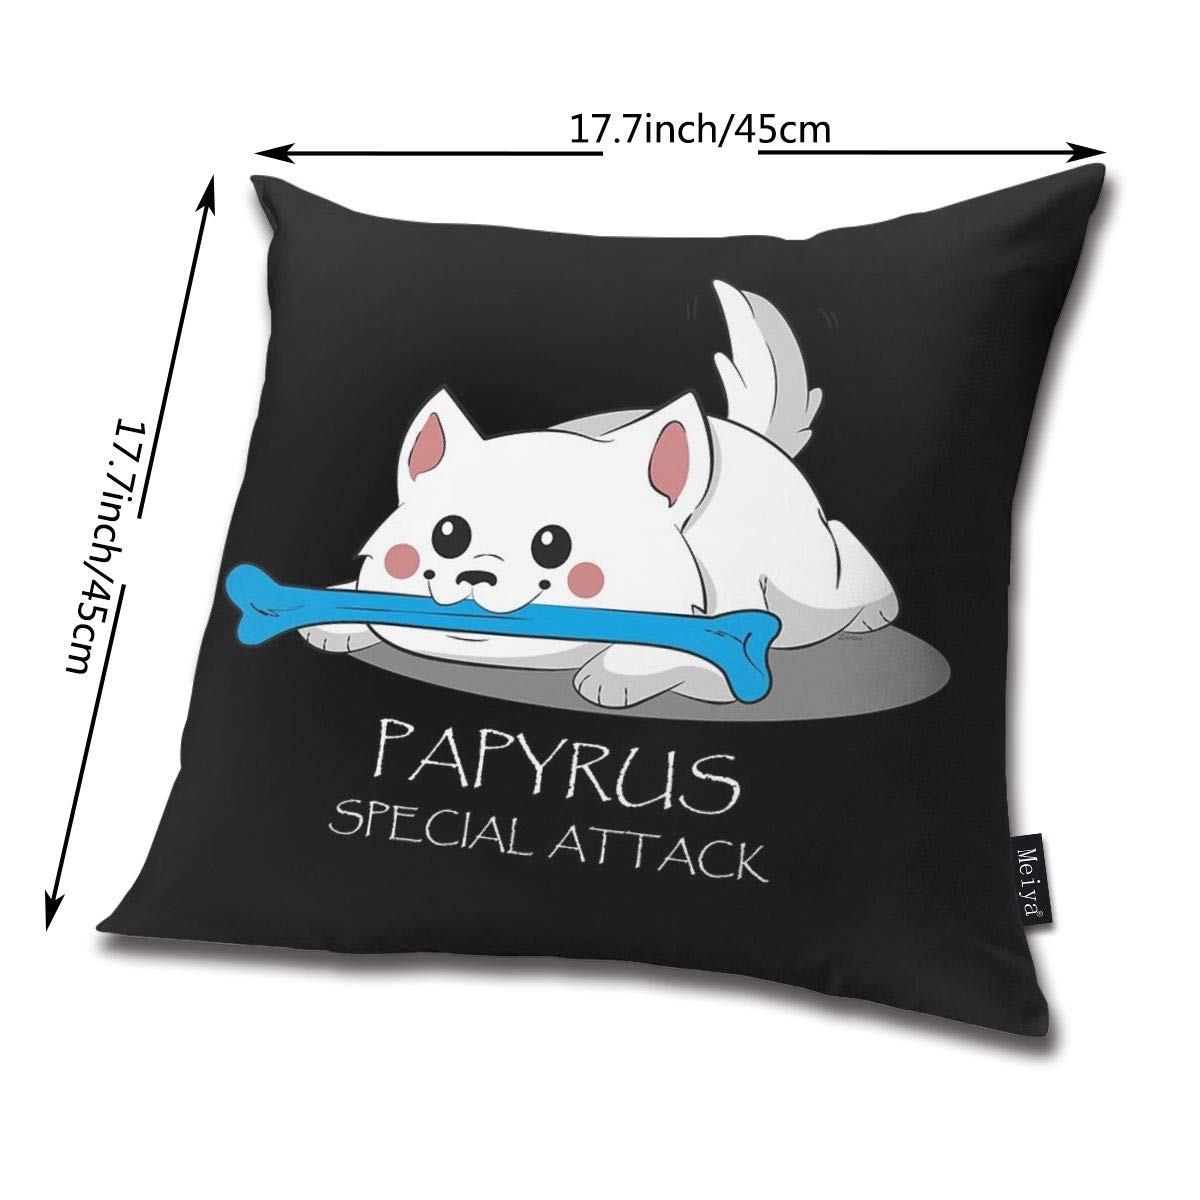 Papyruss Special Attack Decorative Pillow Case Home Decor Square 18x18 Inches Pillowcase QMS CONTRACTING LIMITED Throw Pillow Cover Undertale